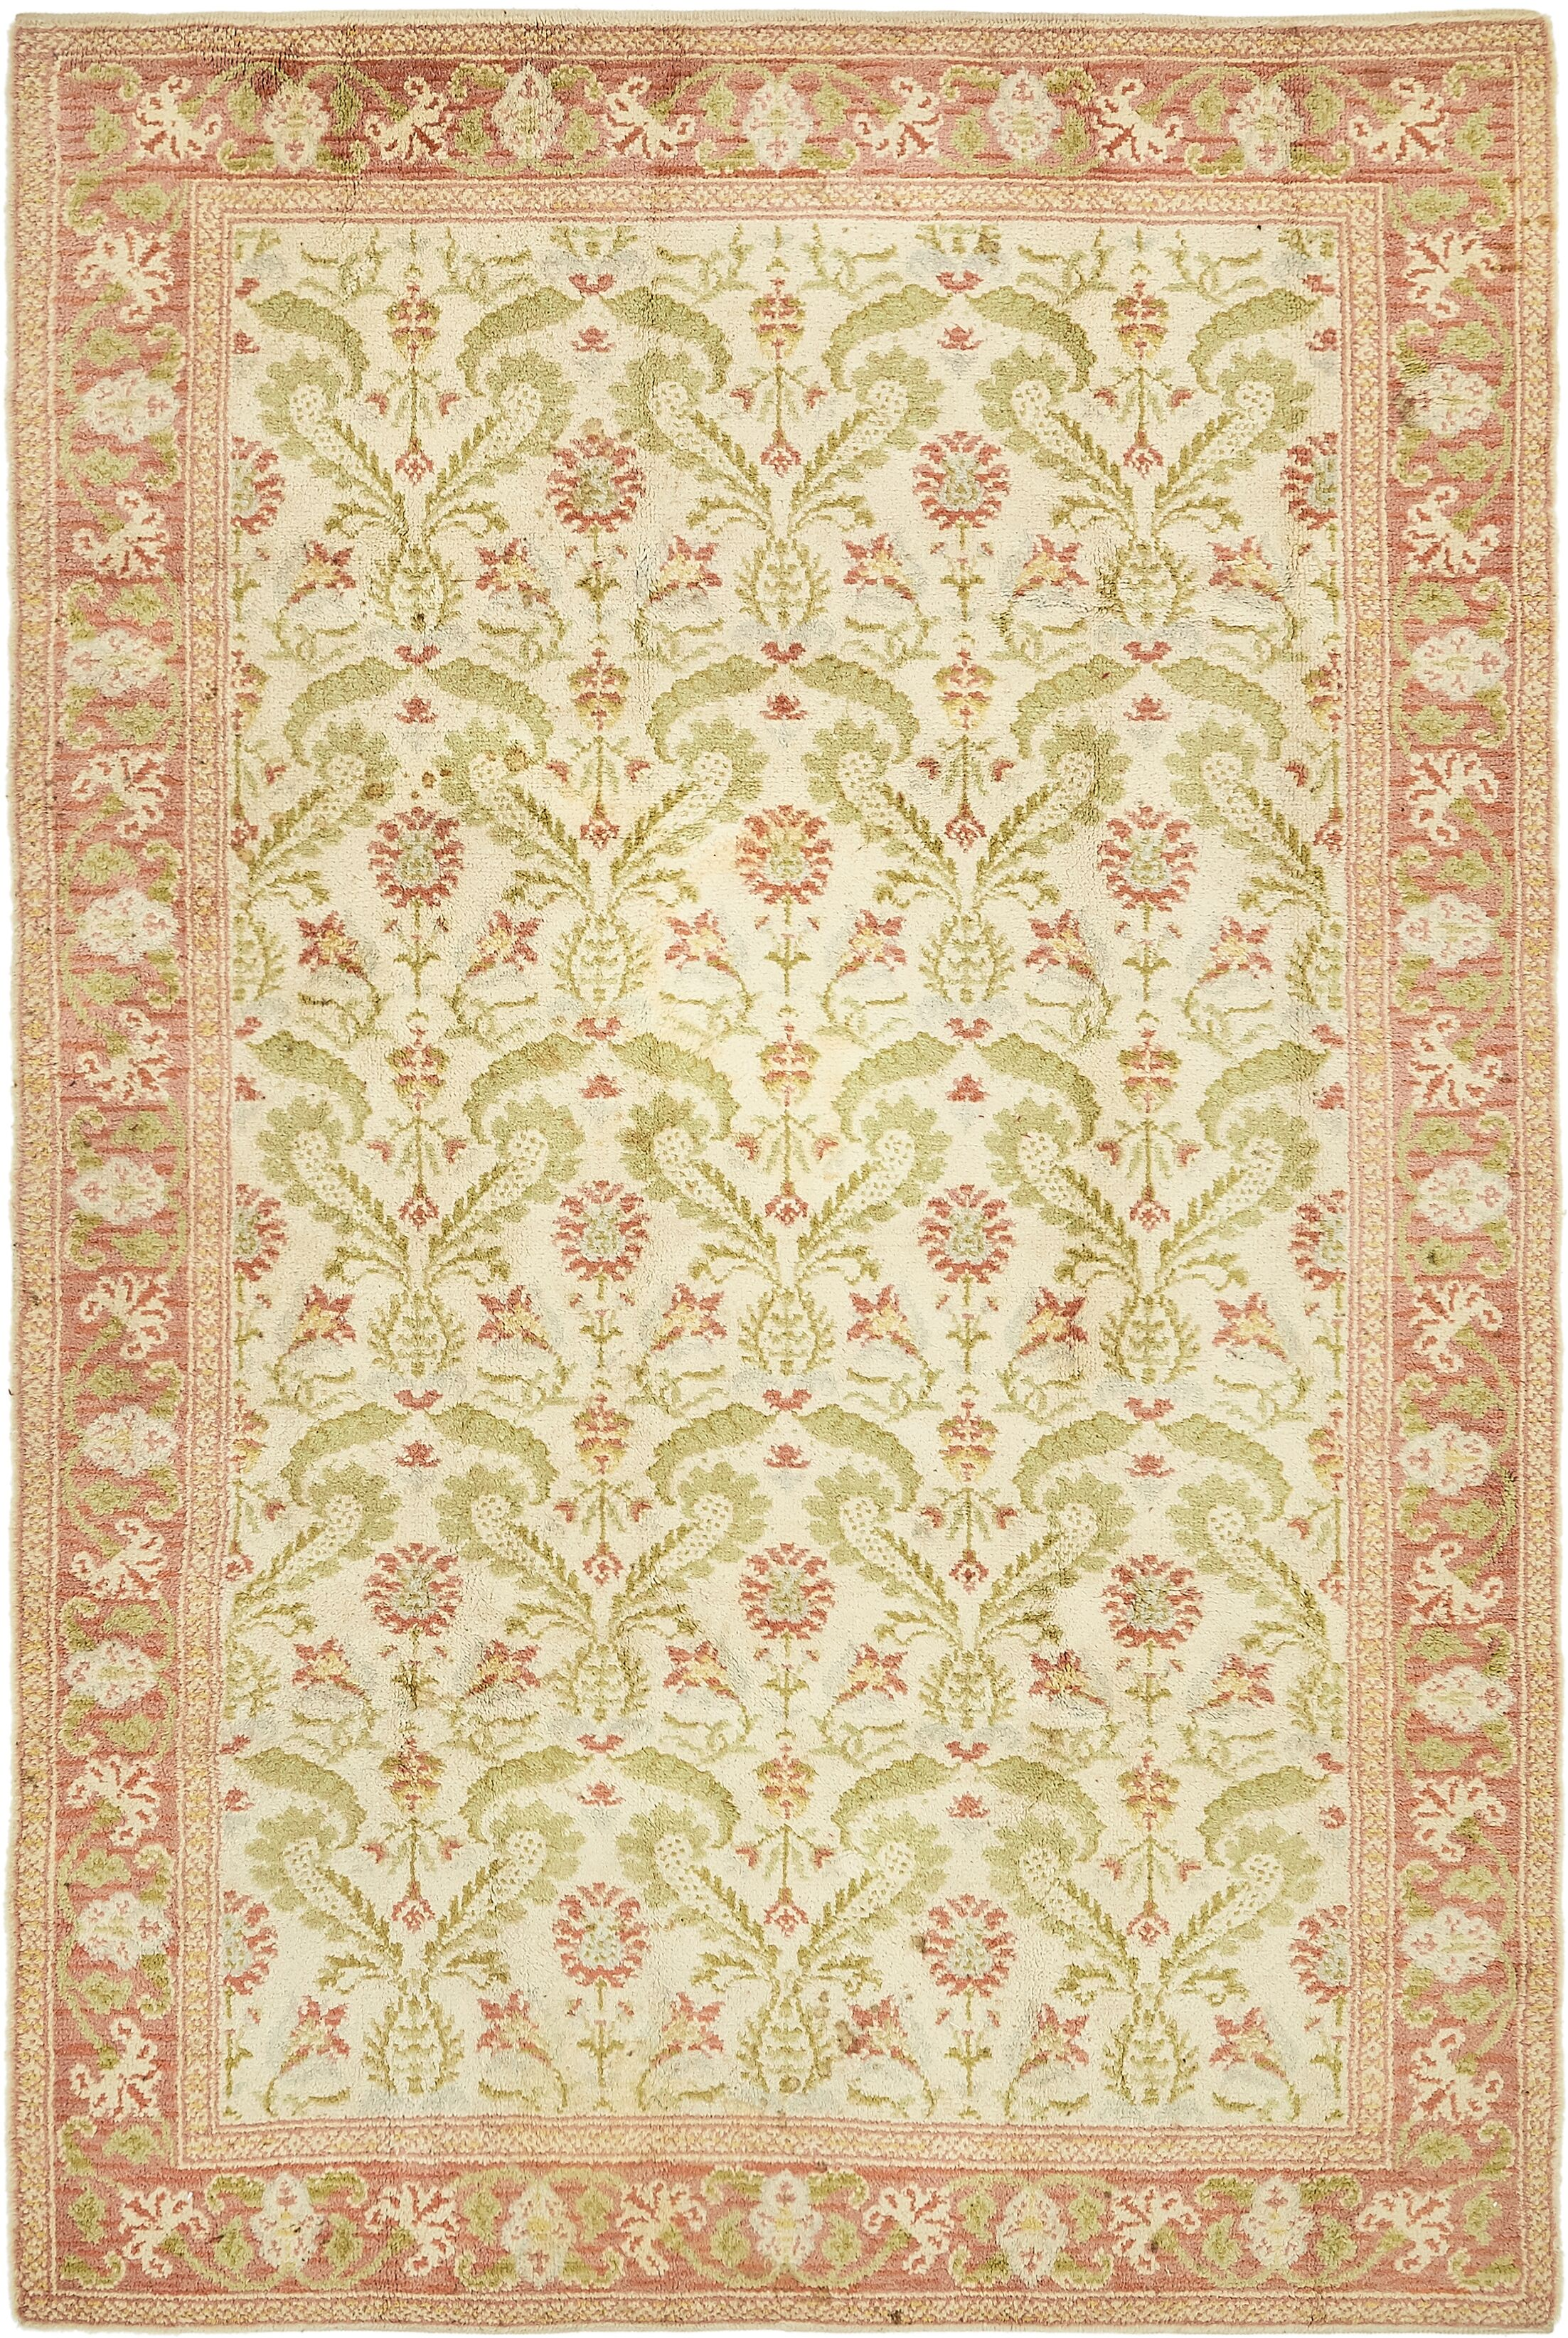 One-of-a-Kind Breckenridge Hand-Knotted Wool Cream Area Rug